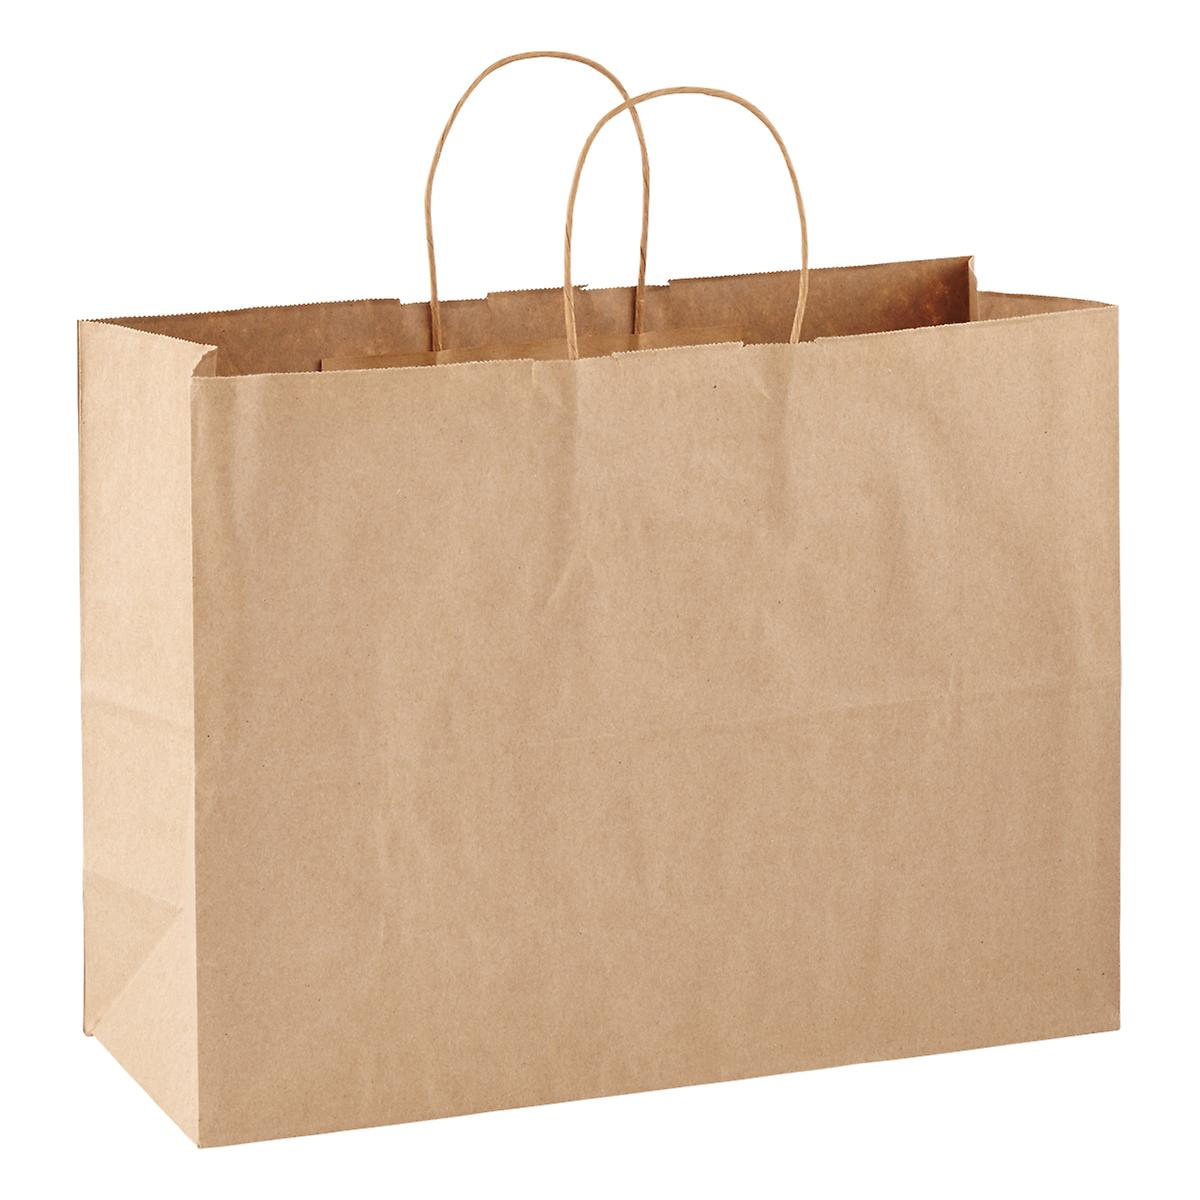 61da1ce6600 Paper Bags - Buy Paper Bags Online From Manufacturer